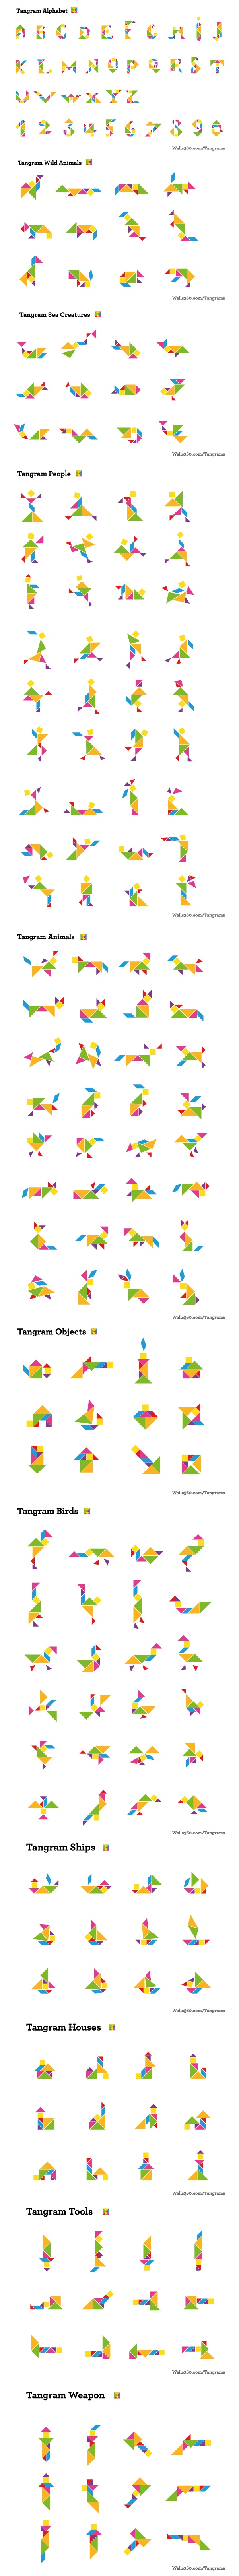 Infinite visual possibilities from Tangrams. http://www.walls360.com/tangrams